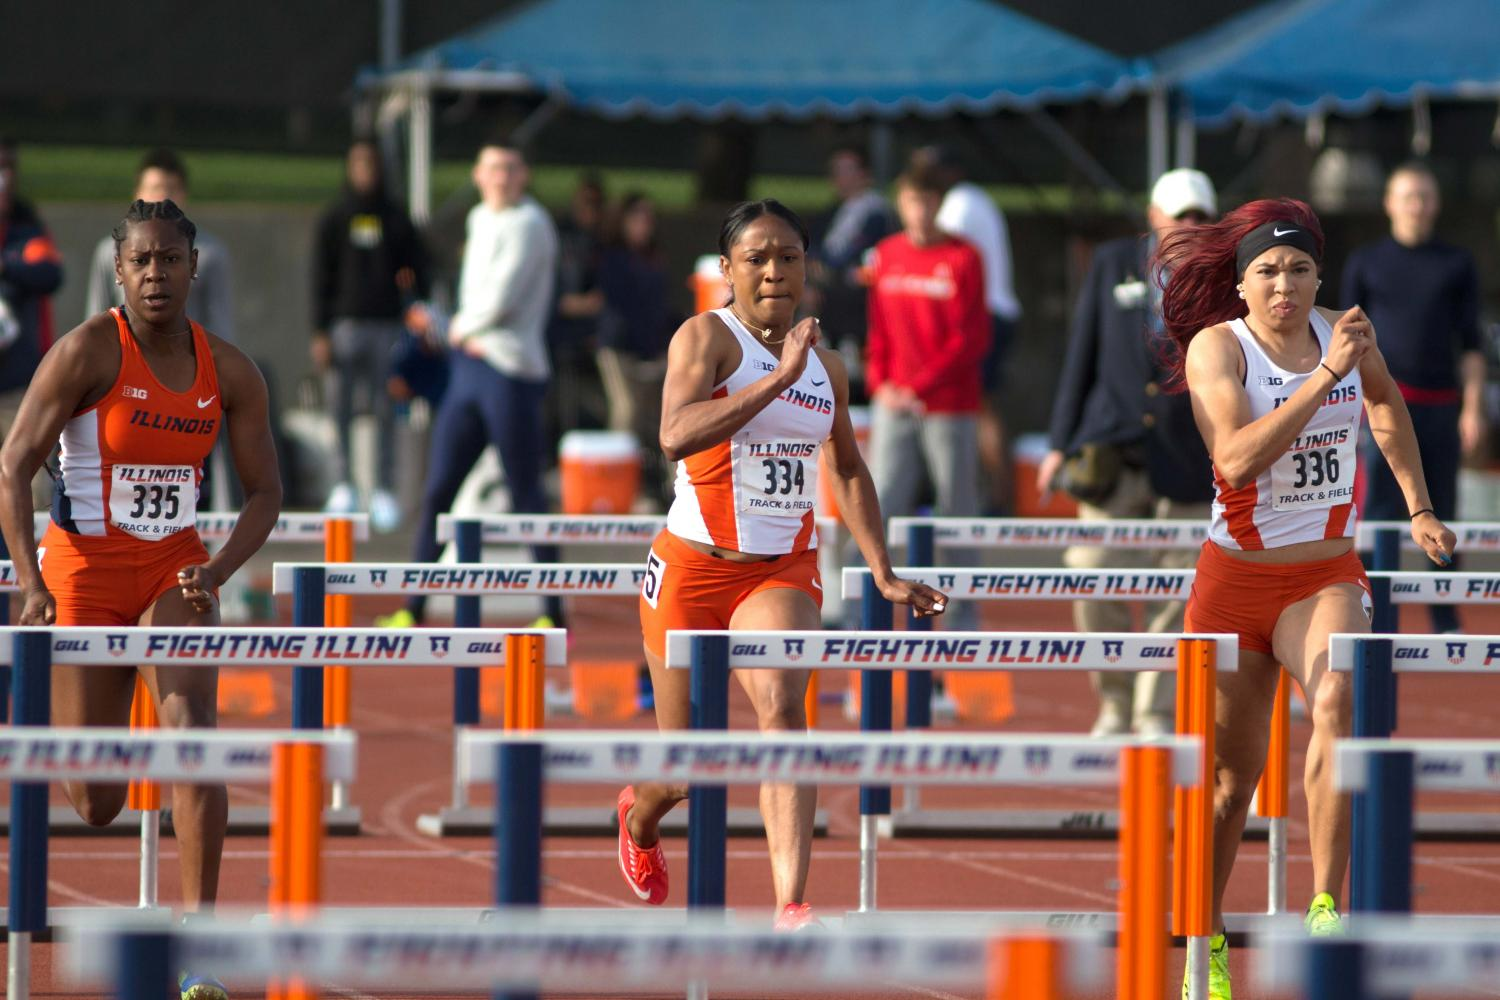 Kortni+Smyers-Jones+%28left%29%2C+Pedrya+Seymour+%28middle%29%2C+and+Jayla+Stewart+%28right%29+race+down+the+track+during+the+100+Meter+Hurdles+at+Illinois+Twilight+at+the+Illinois+Track+Field+on+Saturday%2C+Apr.+22.+Illini+swept+the+top+three+places+in+the+event+with+Seymour+in+first%2C+Stewart+in+second%2C+and+Smyers-Jones+in+third.+